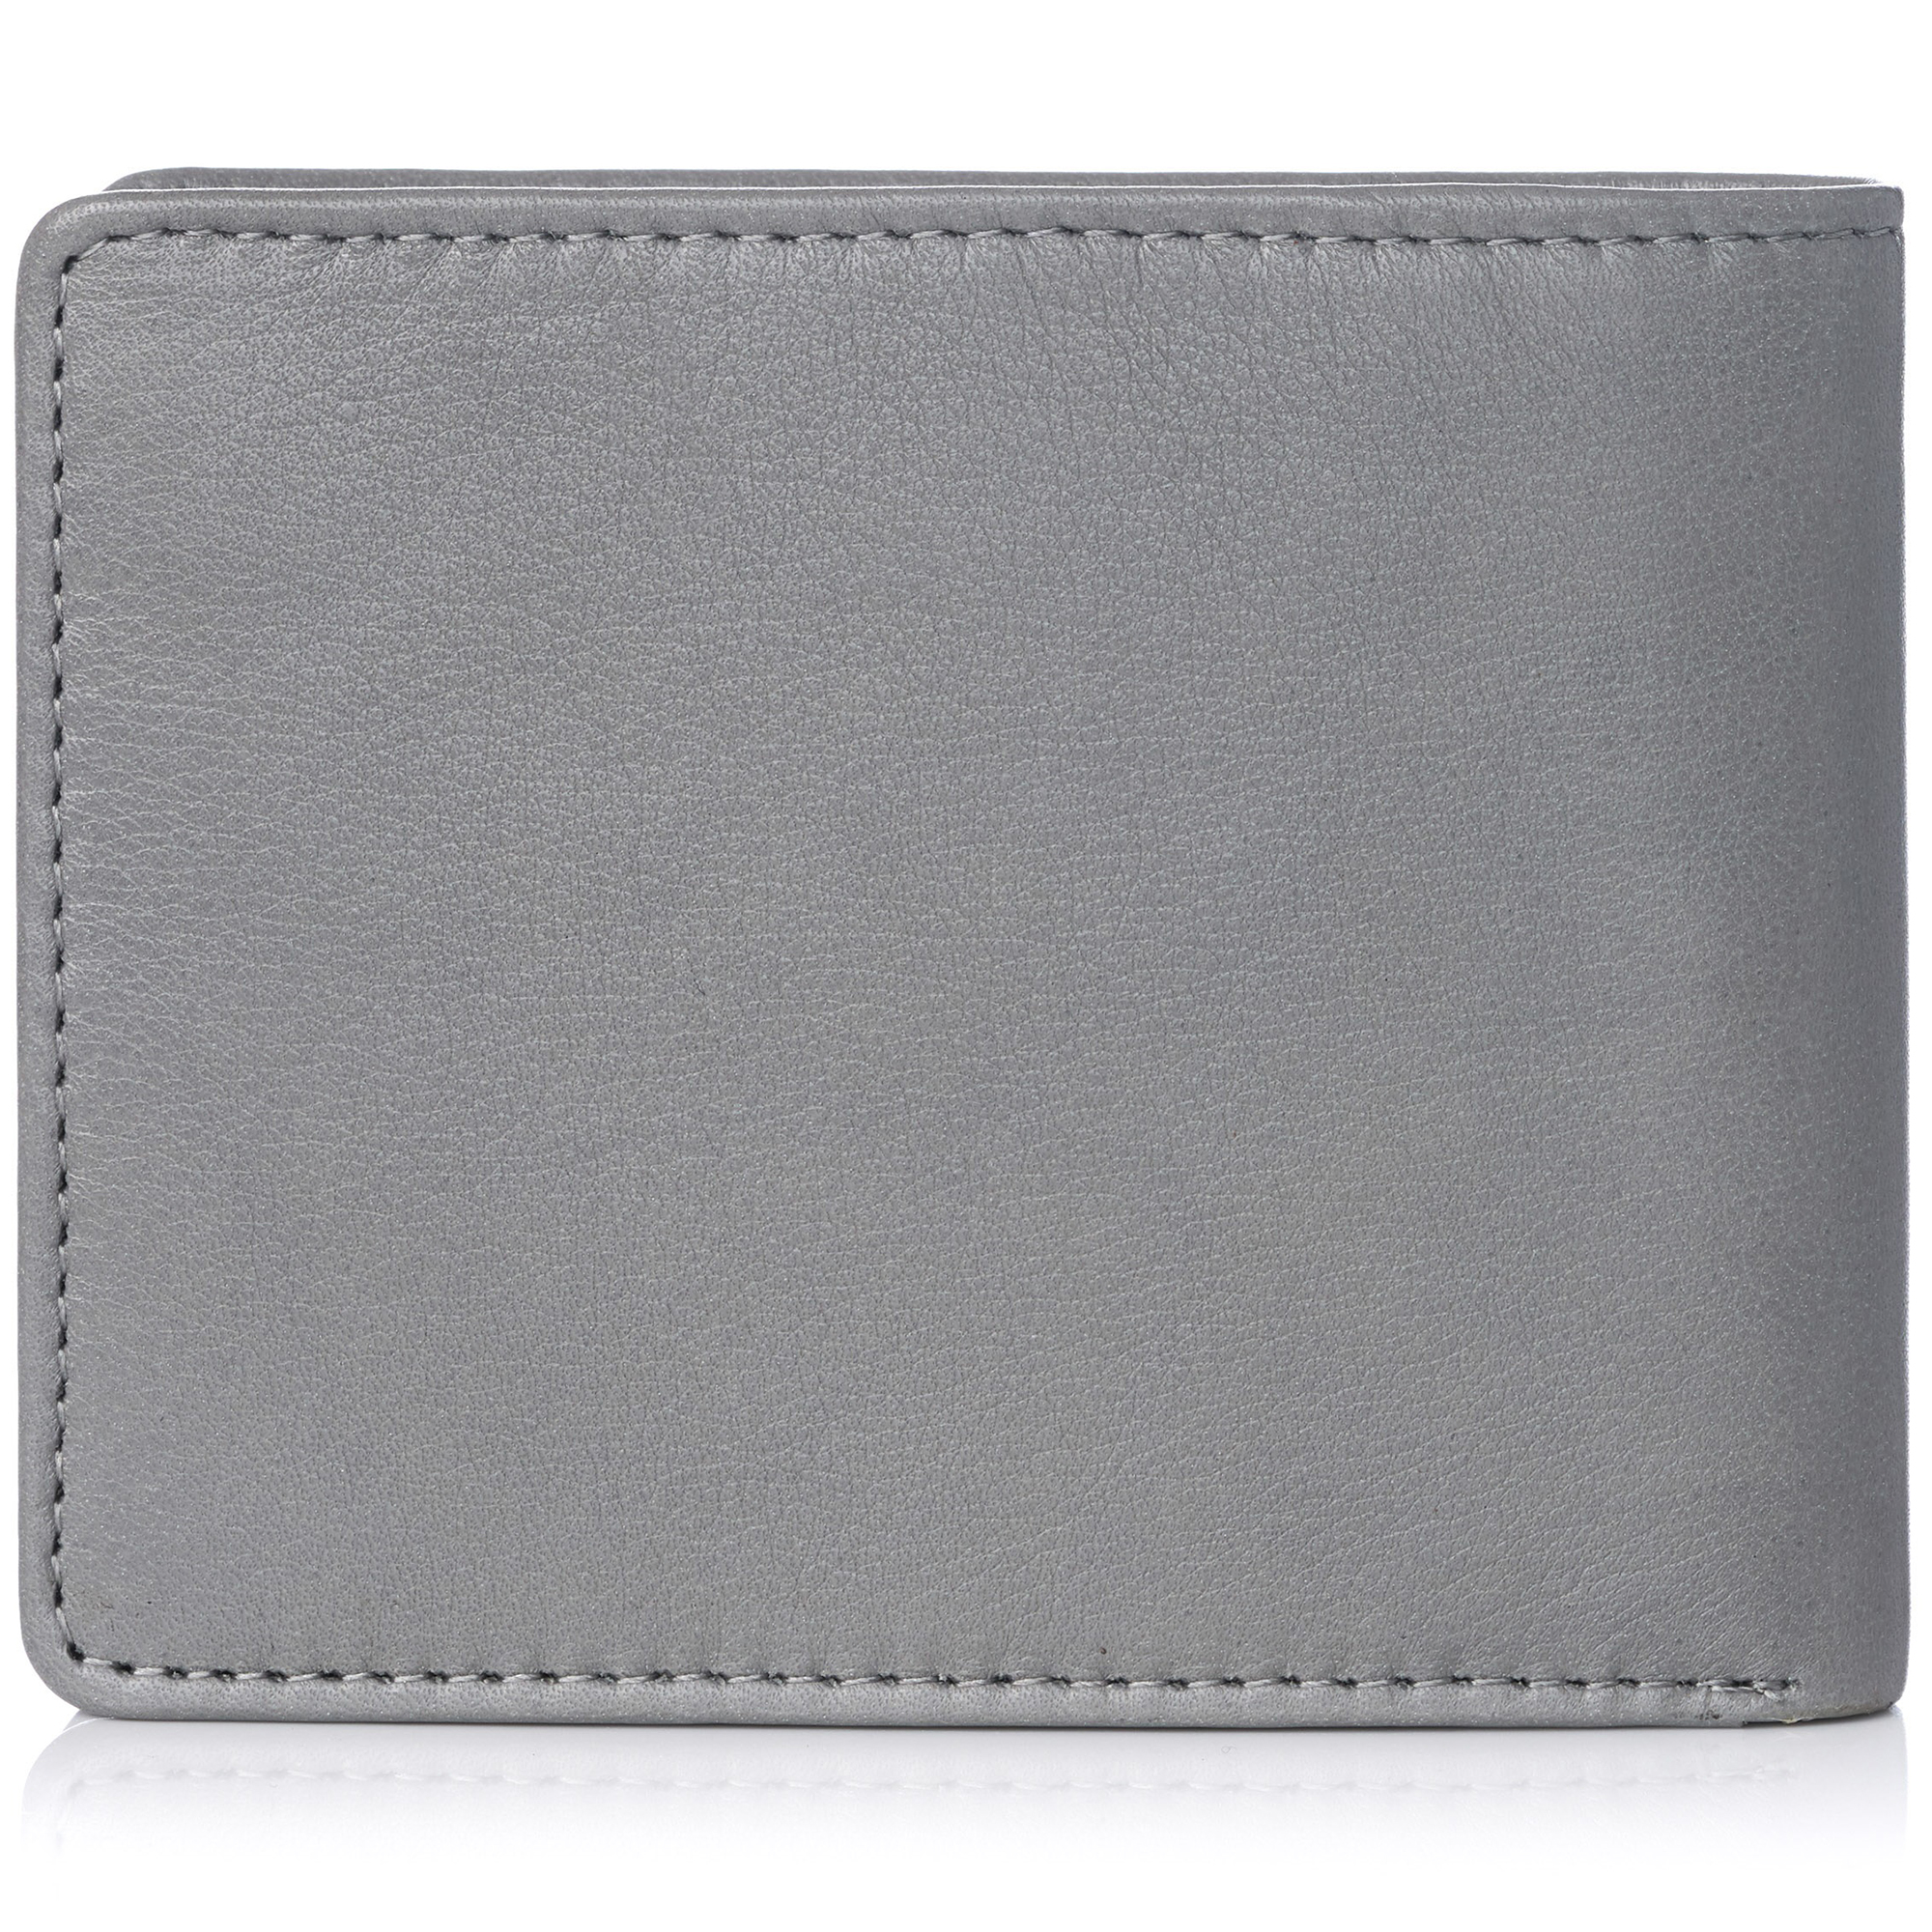 miniature 112 - Alpine-Swiss-RFID-Mens-Wallet-Deluxe-Capacity-Passcase-Bifold-Two-Bill-Sections